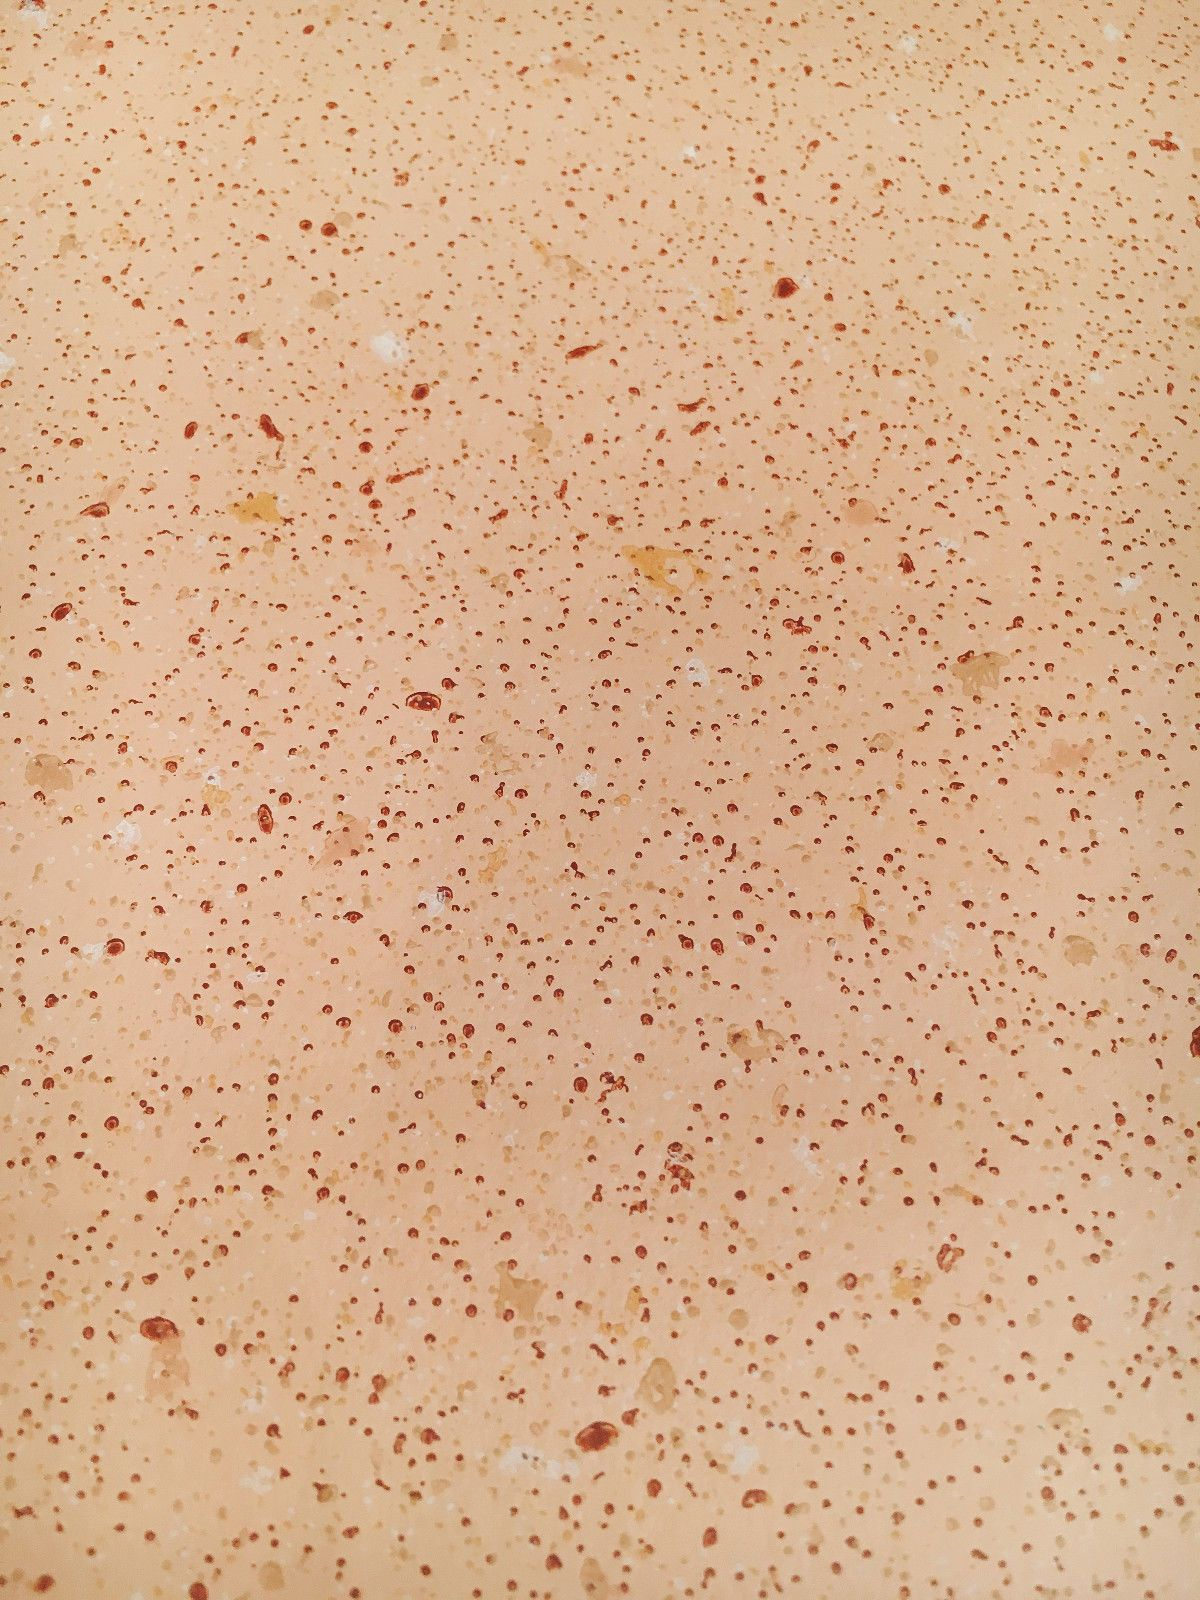 Details about Vintage Wallpaper Speckle Sponge Peach and